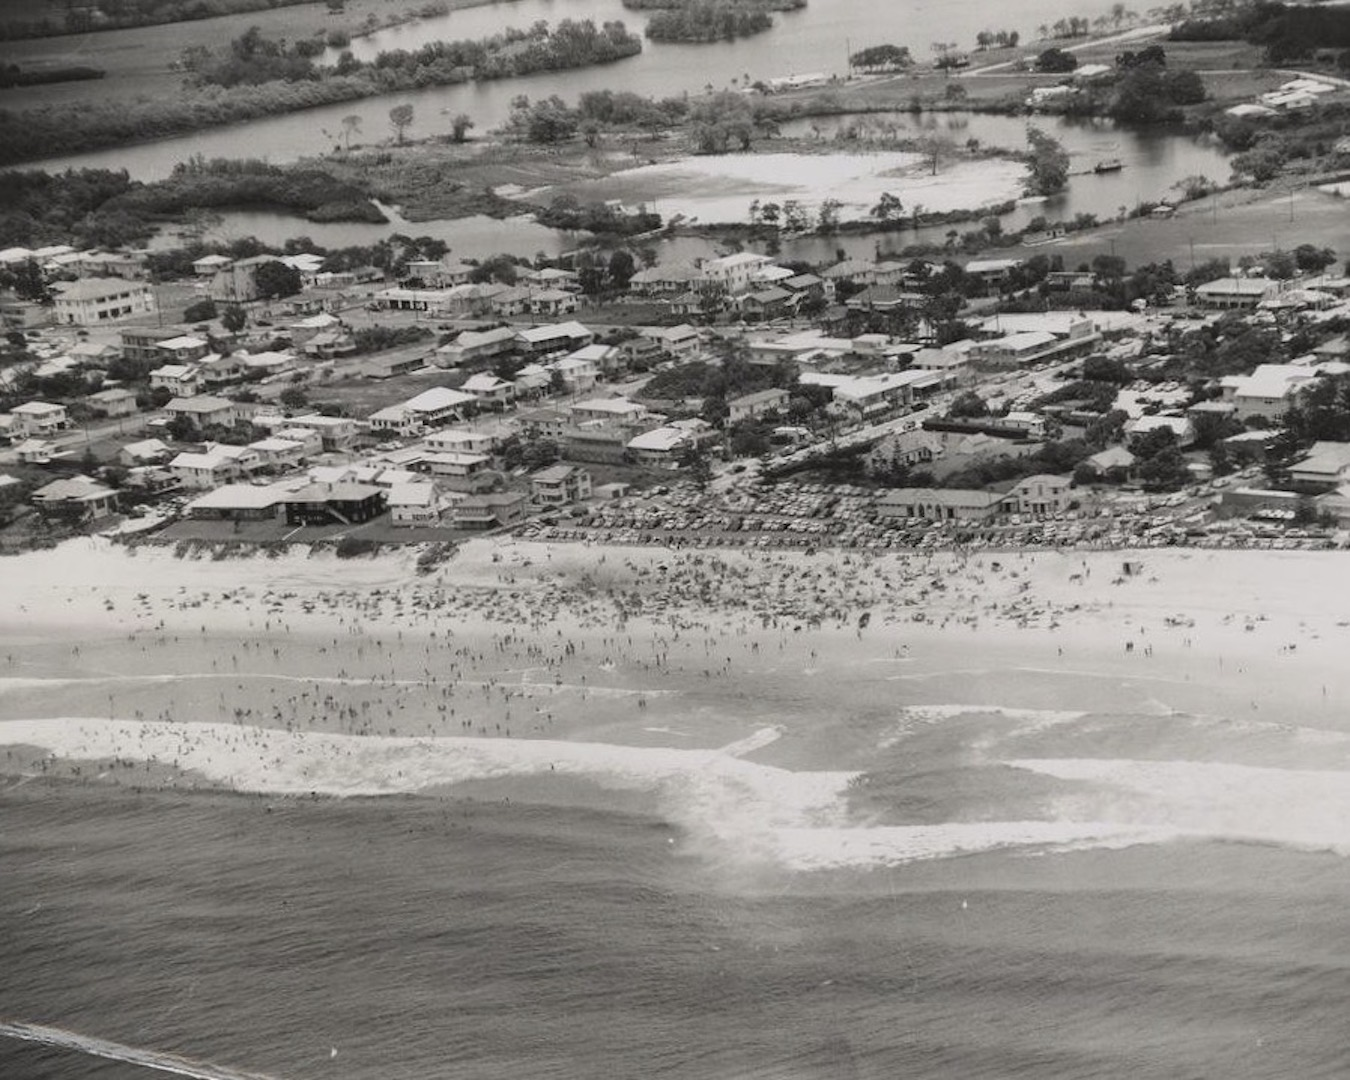 From farmland to high rises: A brief history of Surfers Paradise